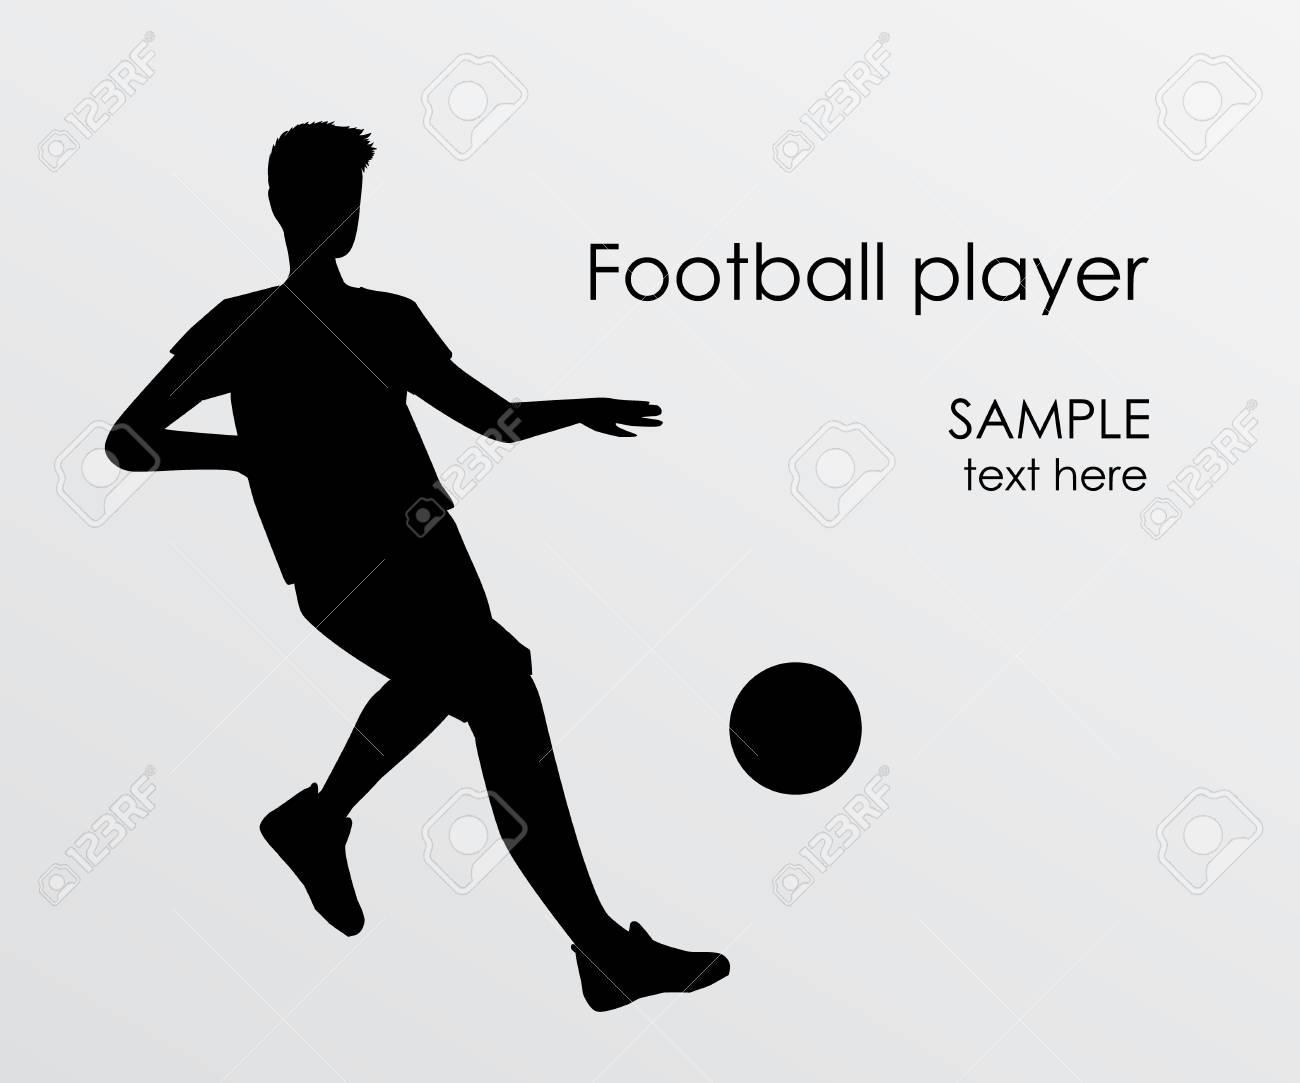 Football player silhouette - vector illustration. Man Soccer player Kick on ball. Person isolated on white background. Poster space for your text - 104765220